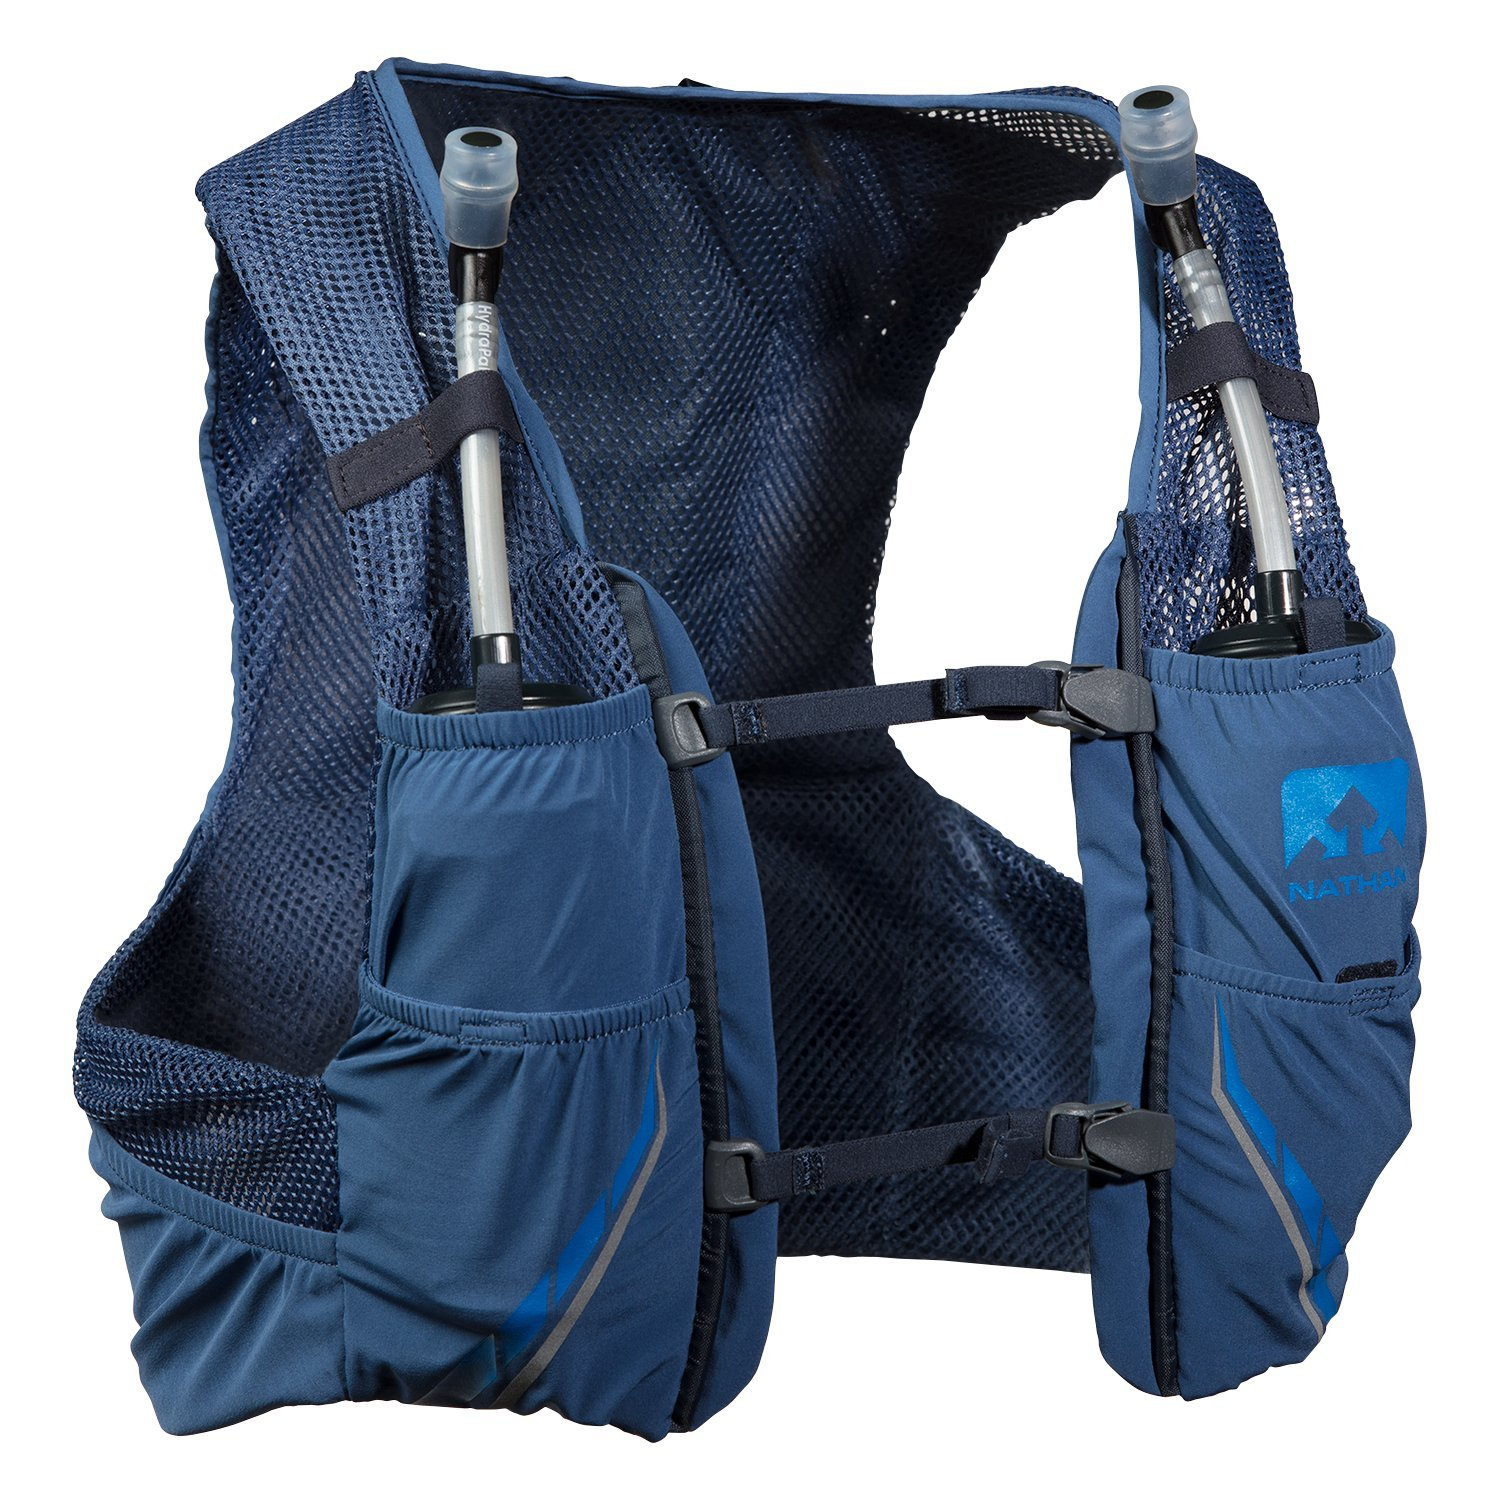 Nathan NS4544-0377-33 Male 2.5L Running Hydration Packs, True Navy/Blue Nights, Medium by Nathan (Image #10)